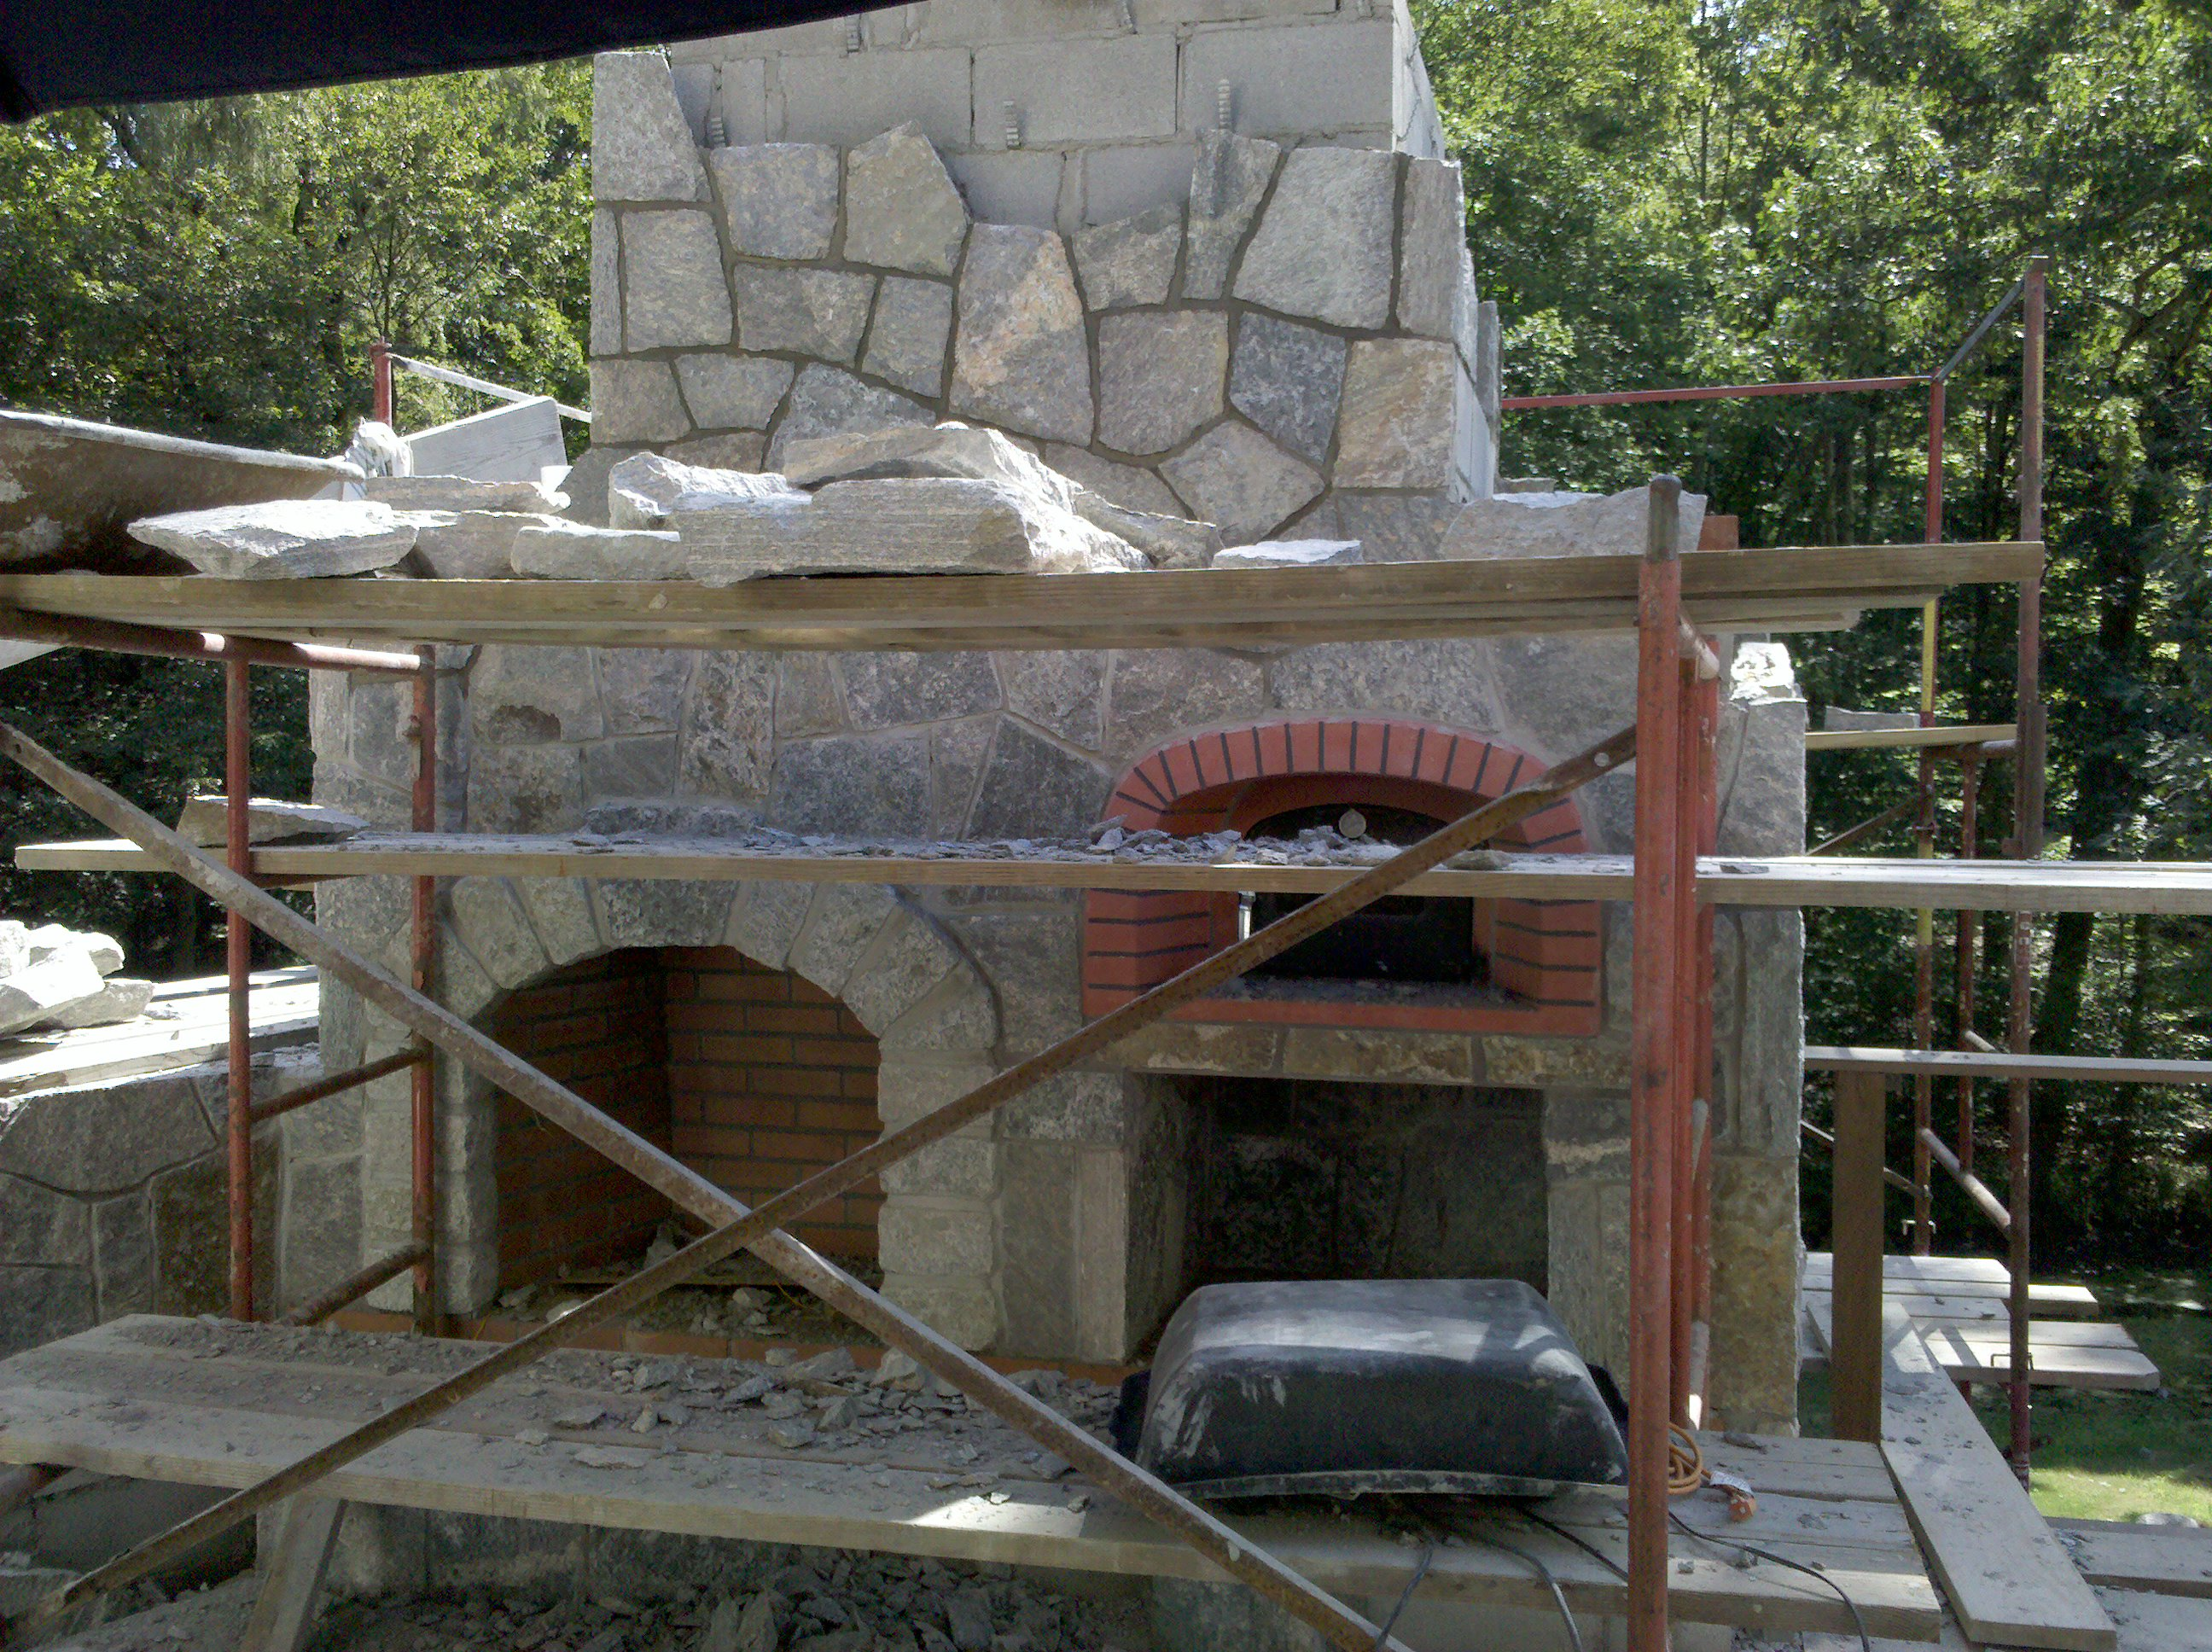 301 moved permanently - Outdoor stone ovens ...